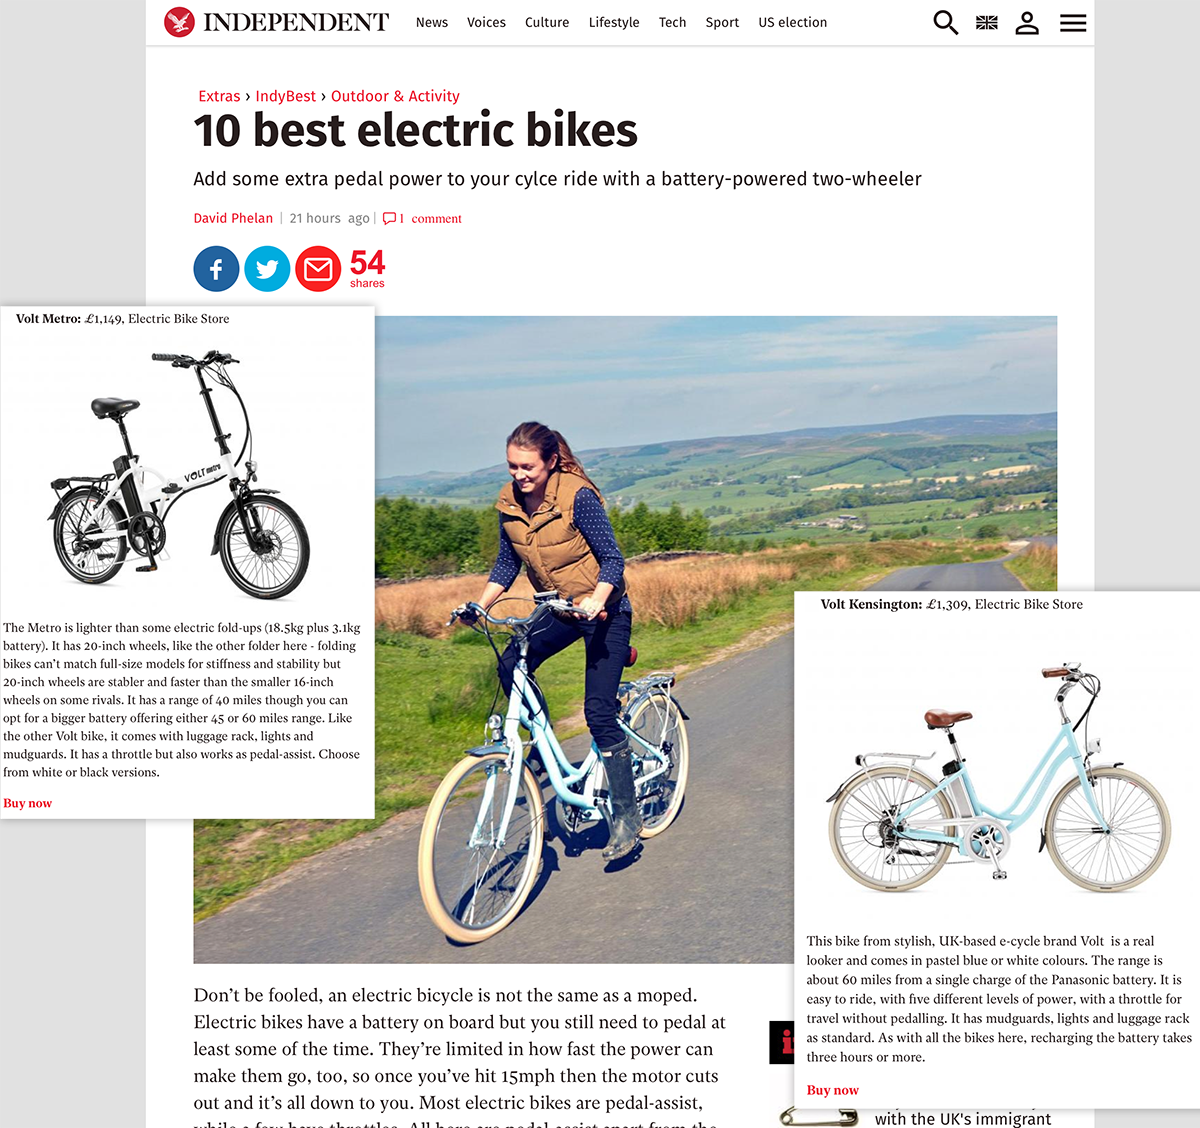 10 best electric bikes feature in Independent